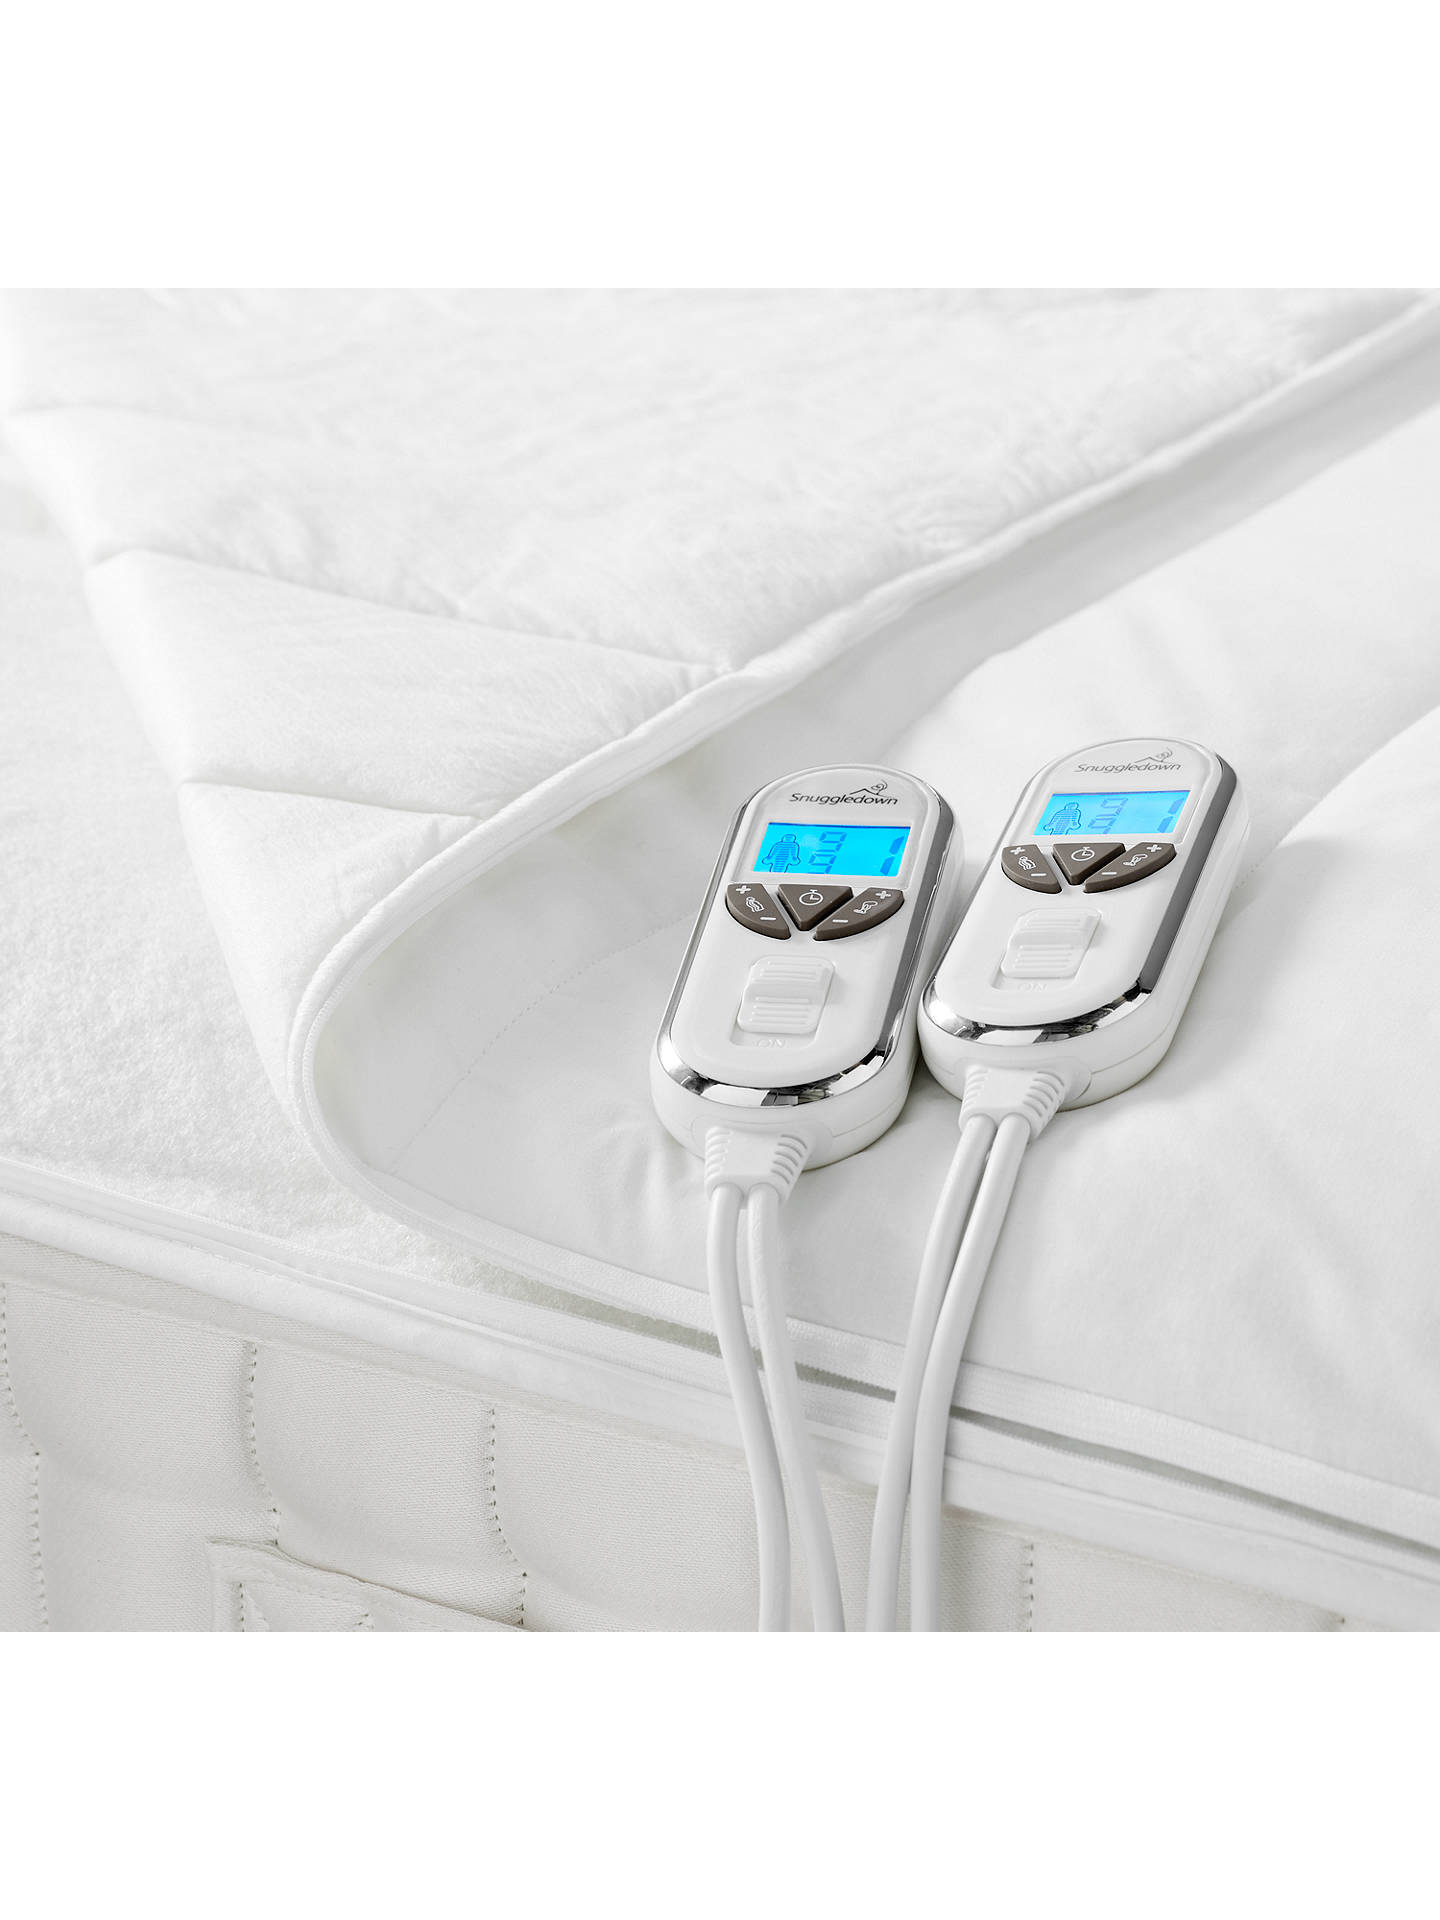 BuySnuggledown Intelligent Warmth Supreme Comfort Heated Mattress Topper, Single Online at johnlewis.com